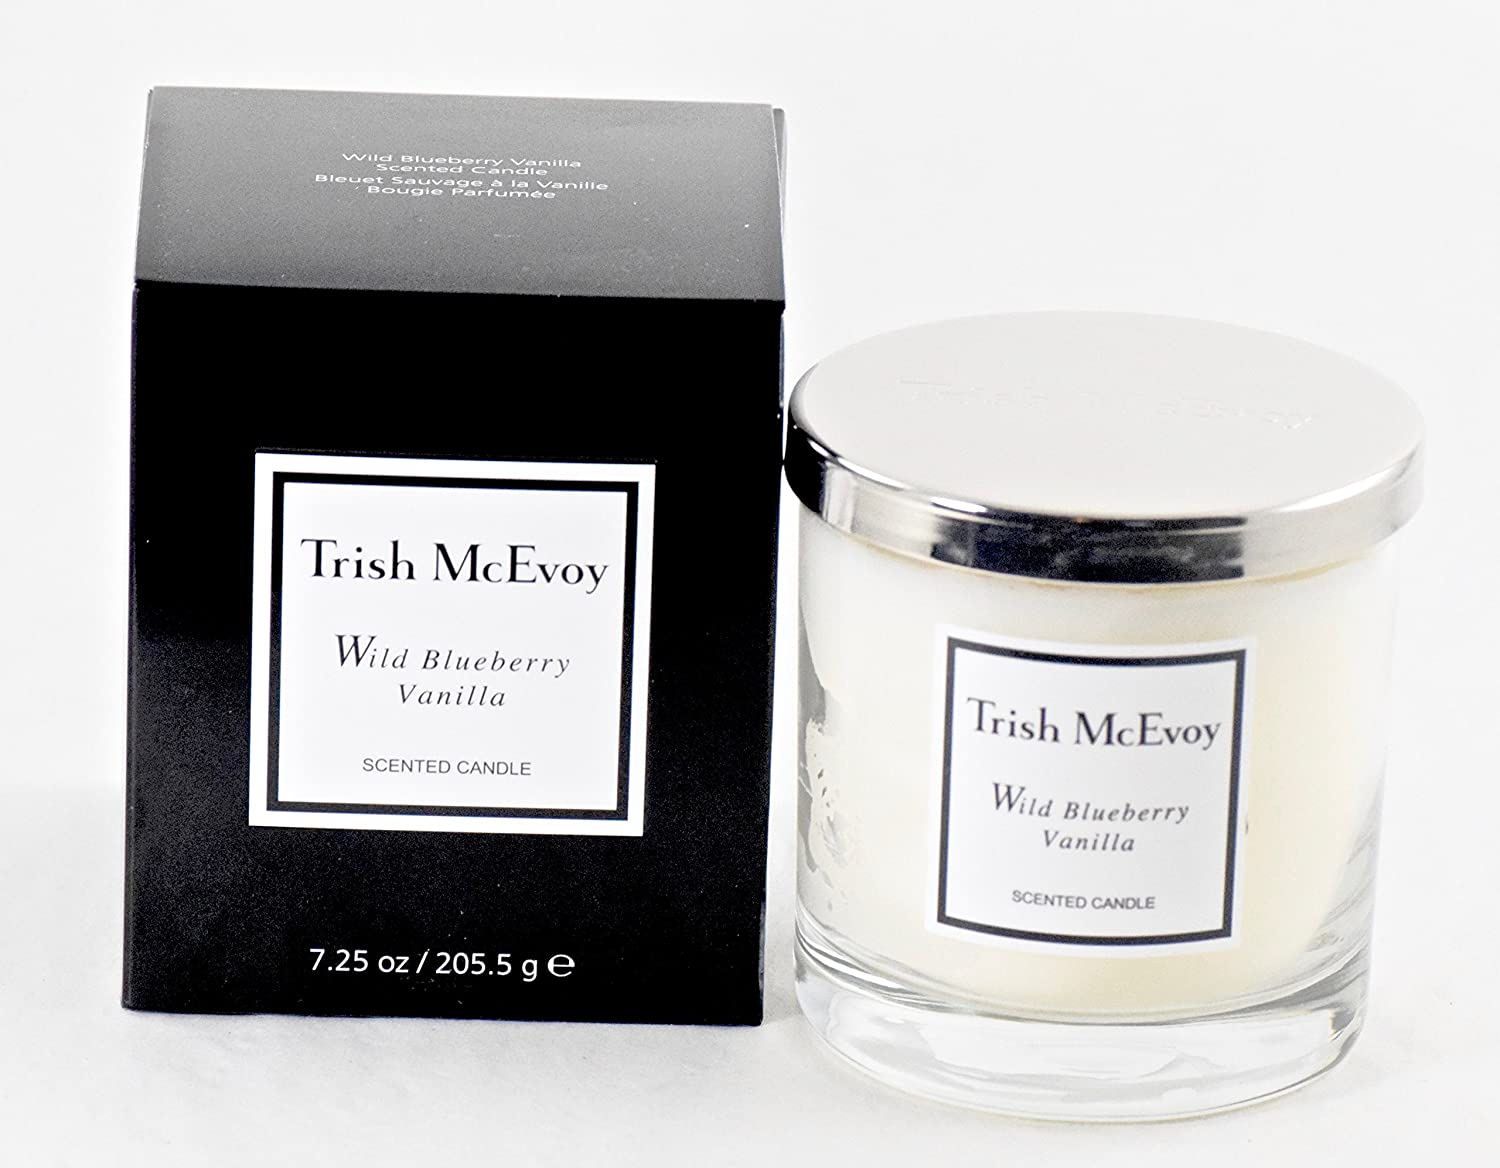 9790787057 Trish Mcevoy Candle 7.25 Oz Wild Blueberry Vanilla Candle - Boxed 91F2BU5UK4LL